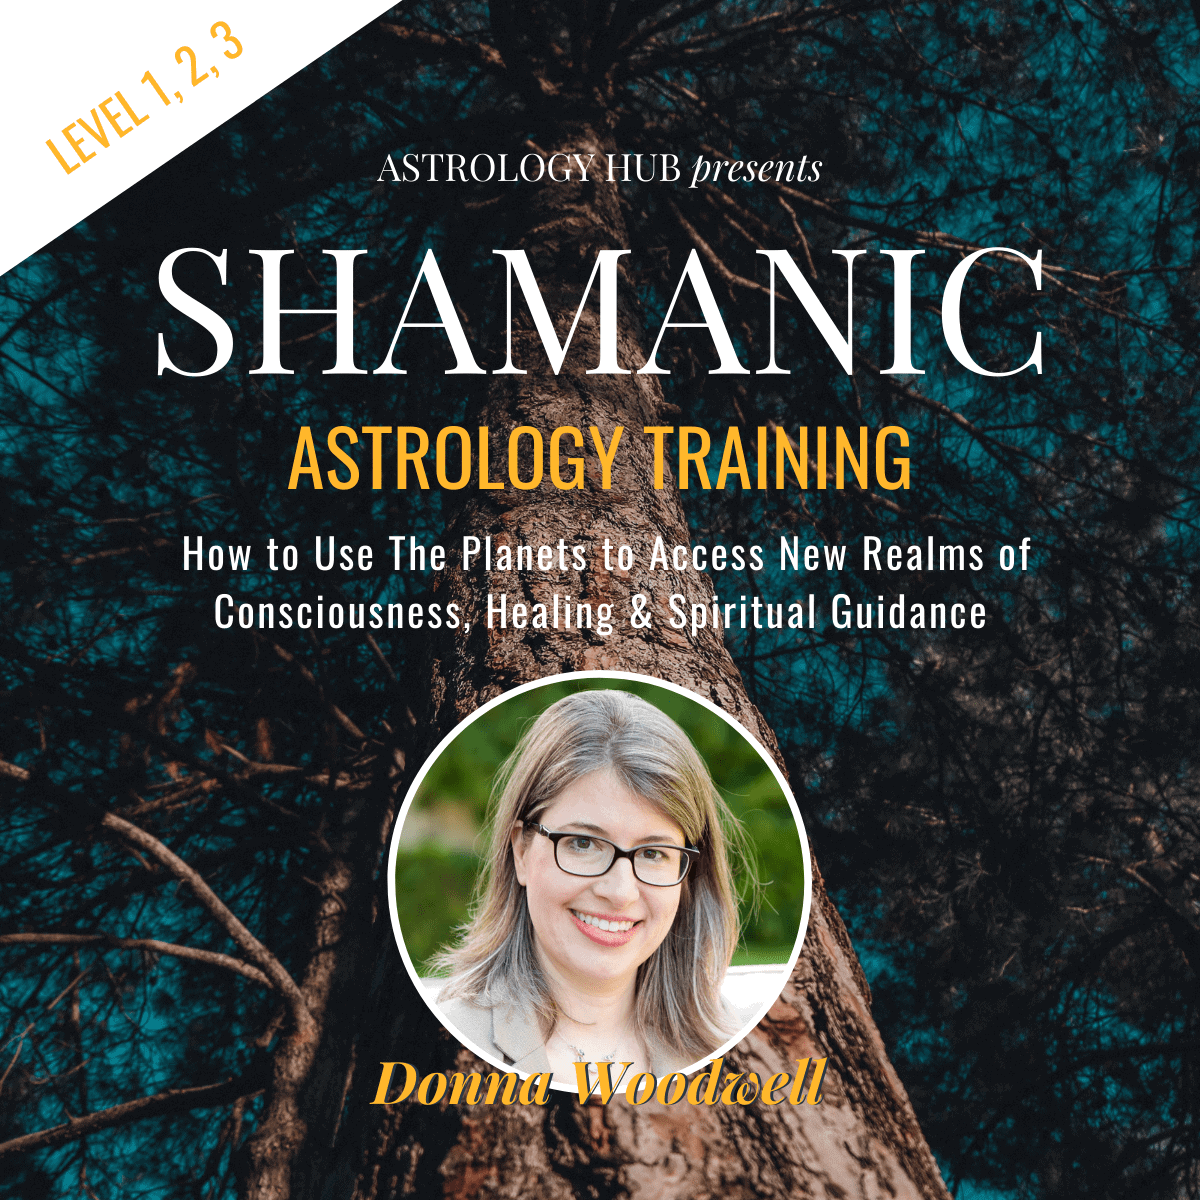 shamanic astrology training w/ Donna Woodwell